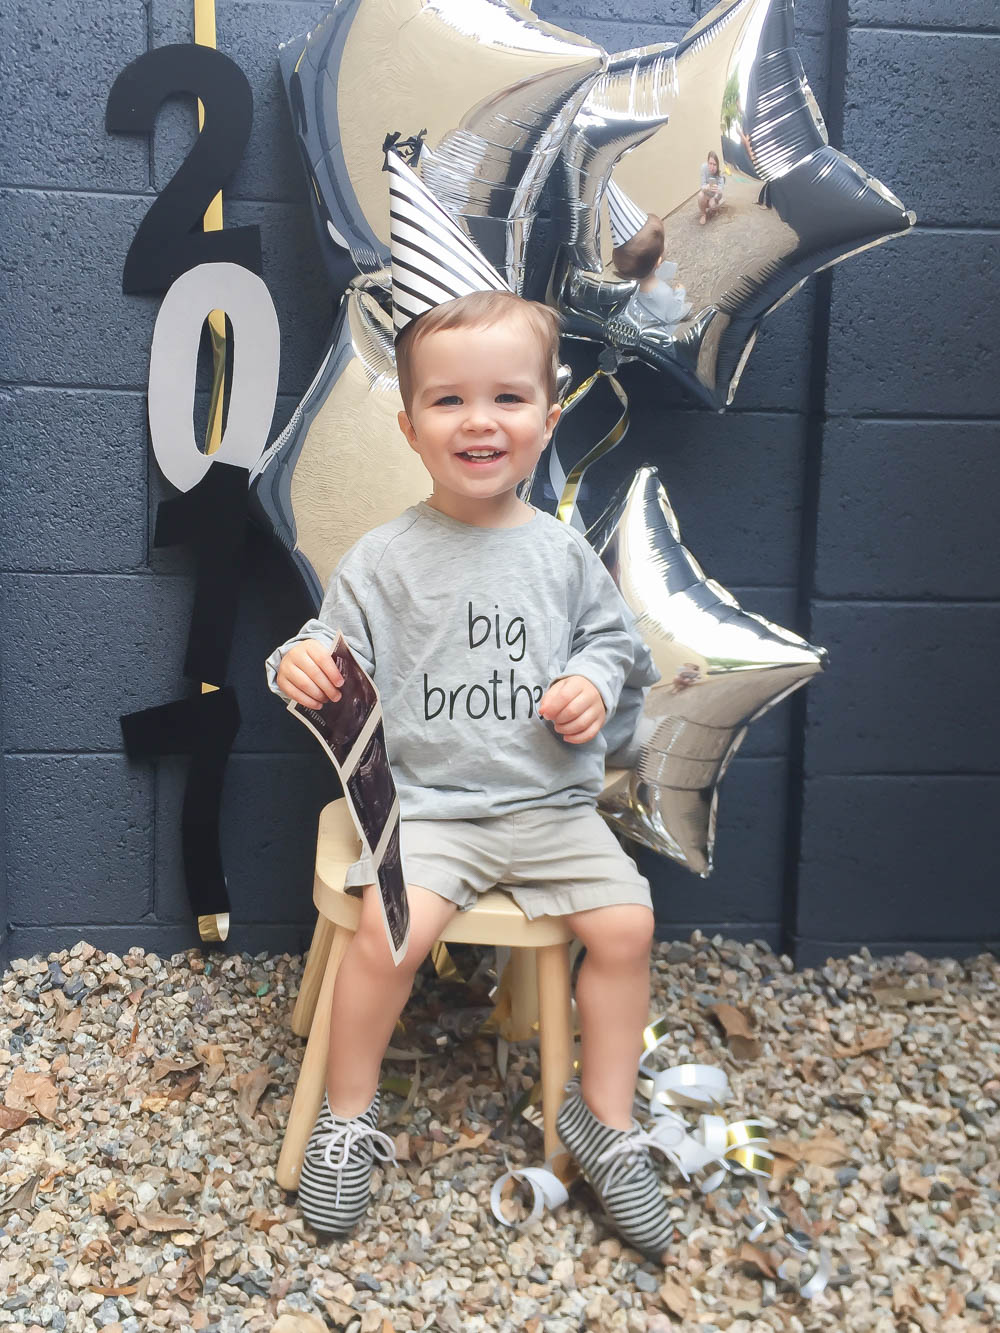 New Years Pregnancy Announcement | Sibling Pregnancy Announcement | Momma Society